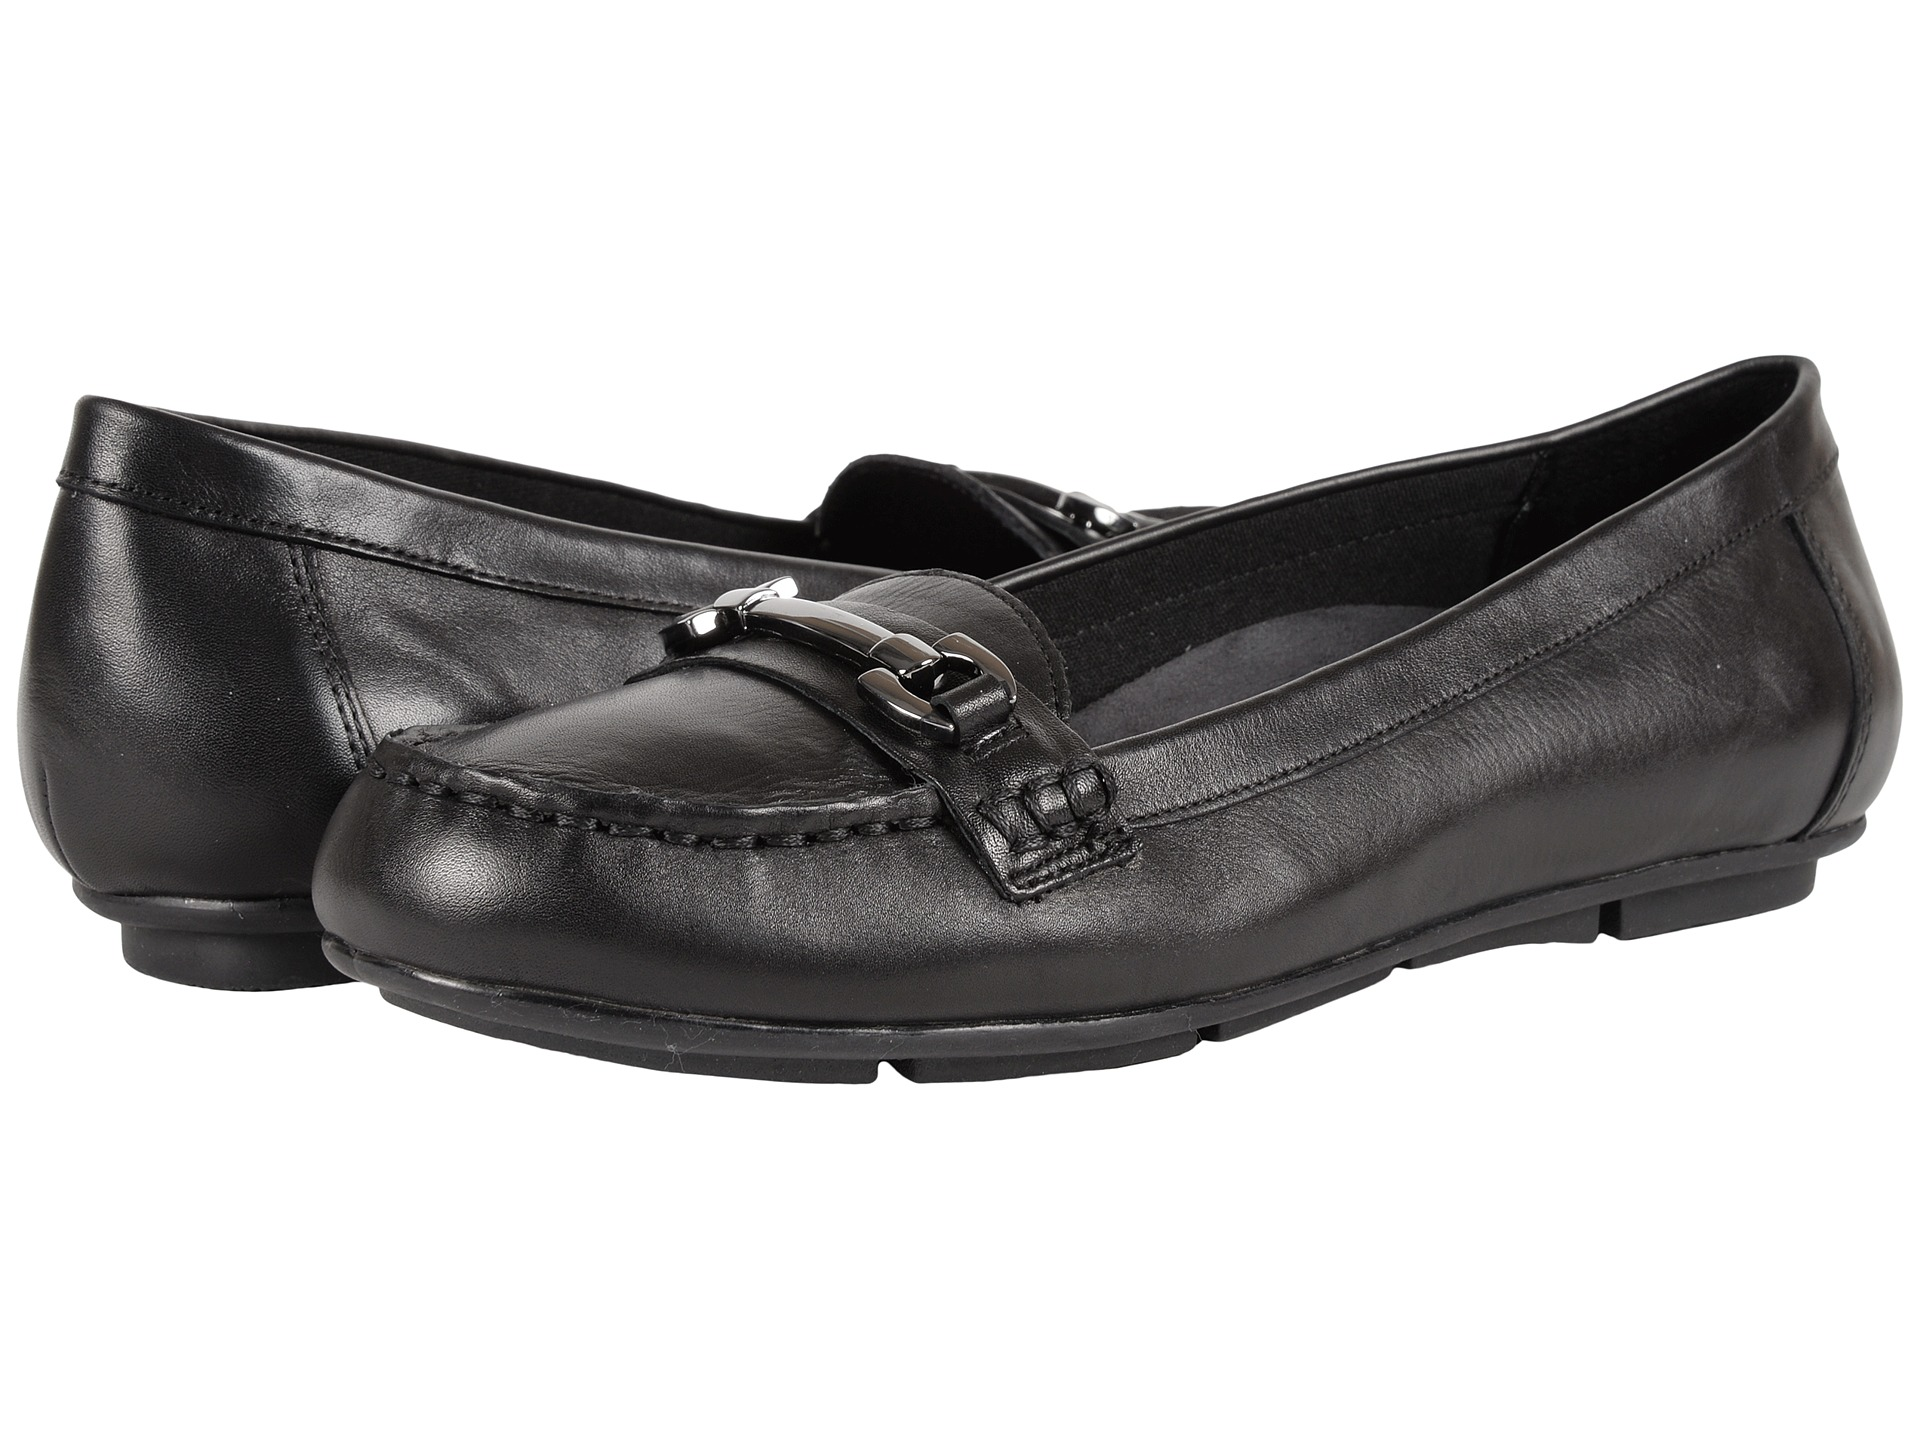 VIONIC Chill Kenya Loafer - Zappos.com Free Shipping BOTH Ways